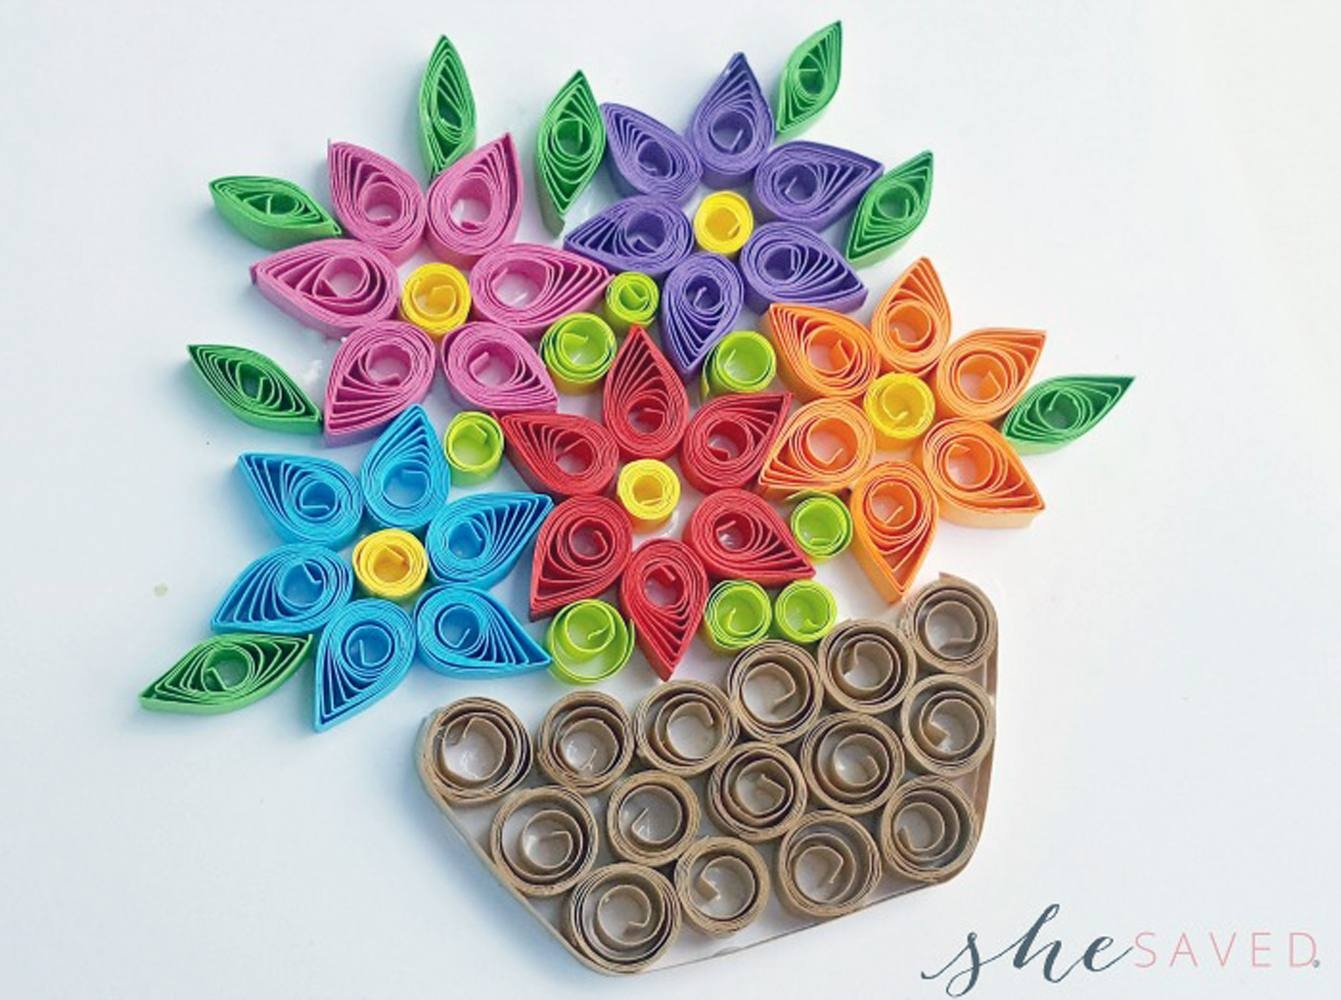 11 Paper Quilling Patterns For Beginners - Free Printable Quilling Patterns